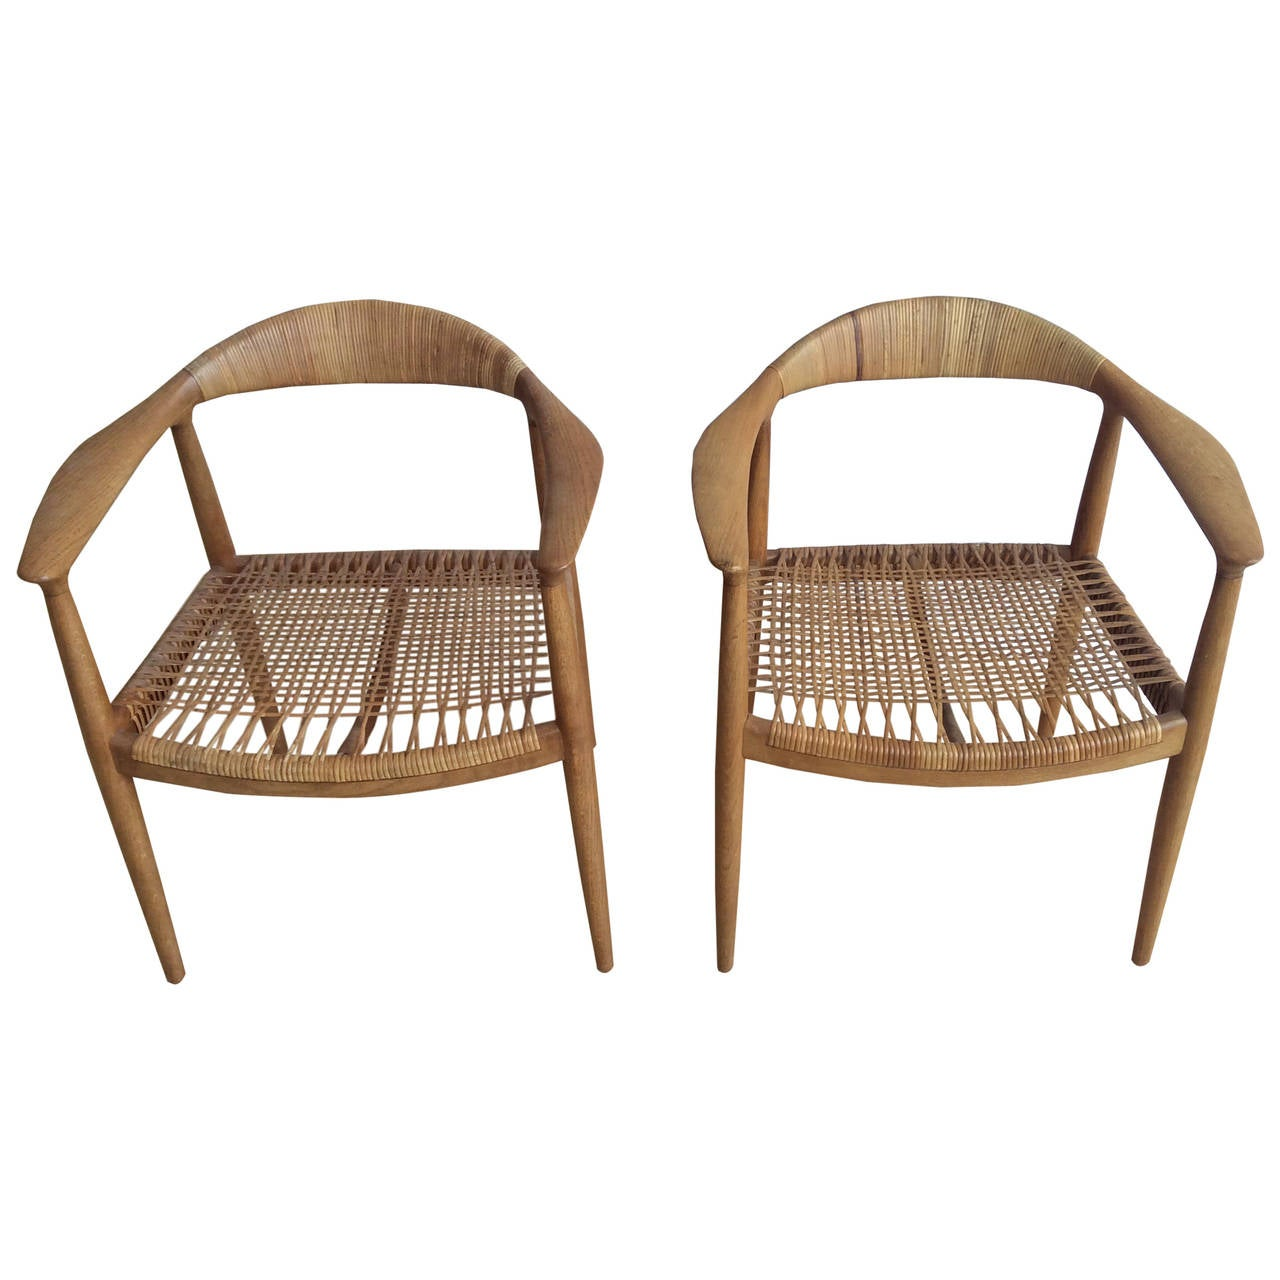 Home > Furniture > Seating > Chairs. Full resolution  image, nominally Width 1280 Height 1280 pixels, image with #492D20.